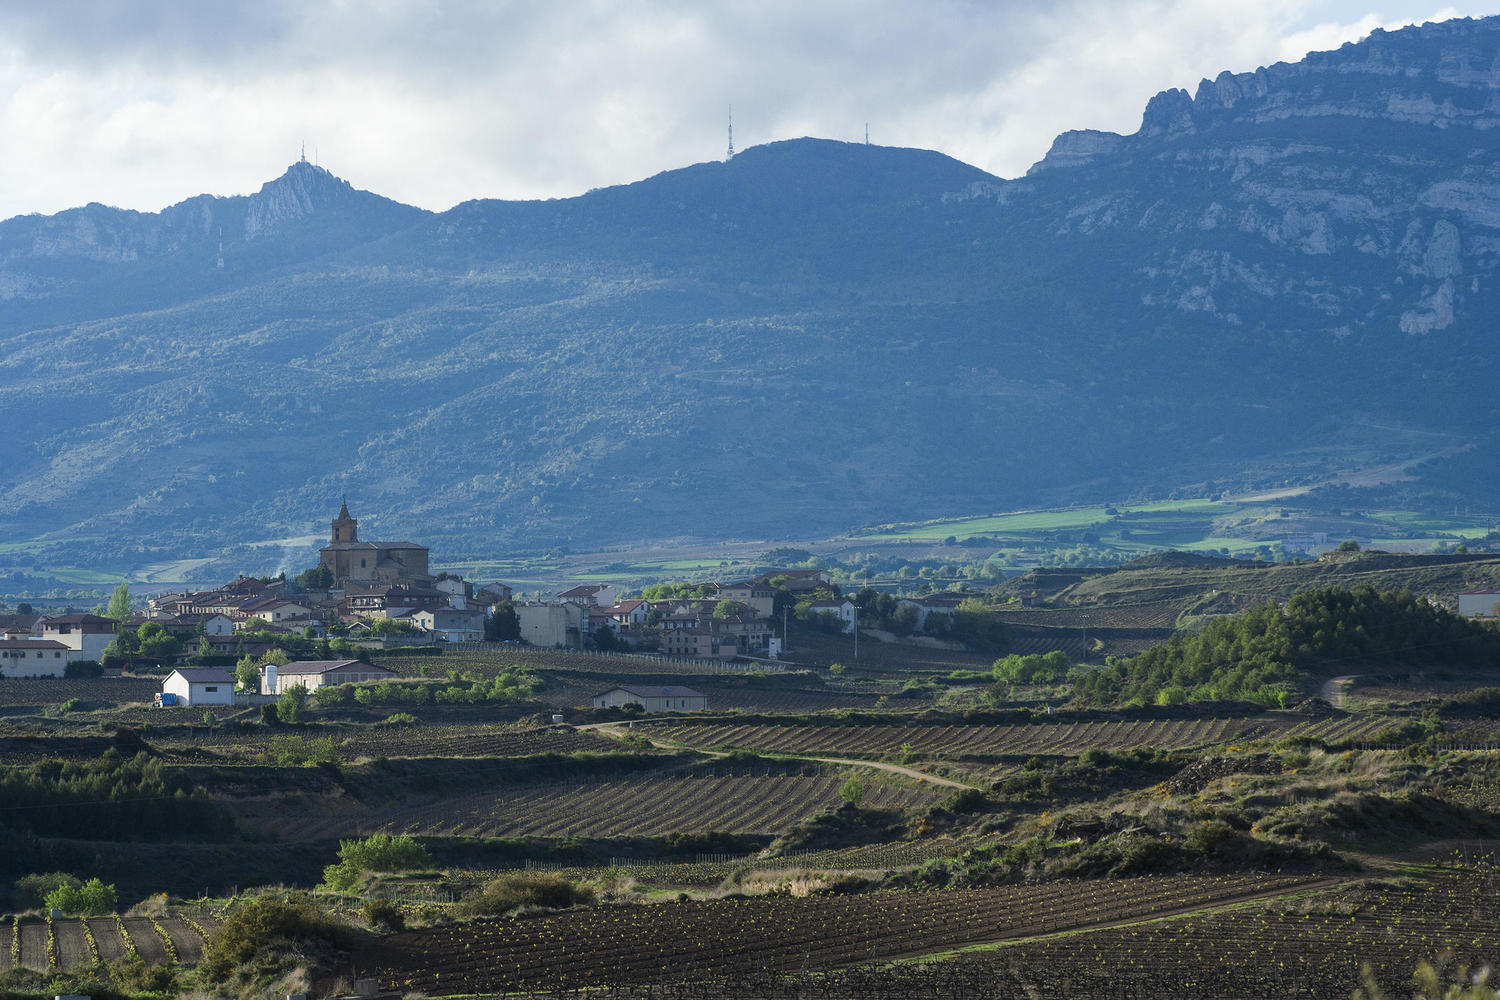 Rioja villages below the Sierra de Cantabria